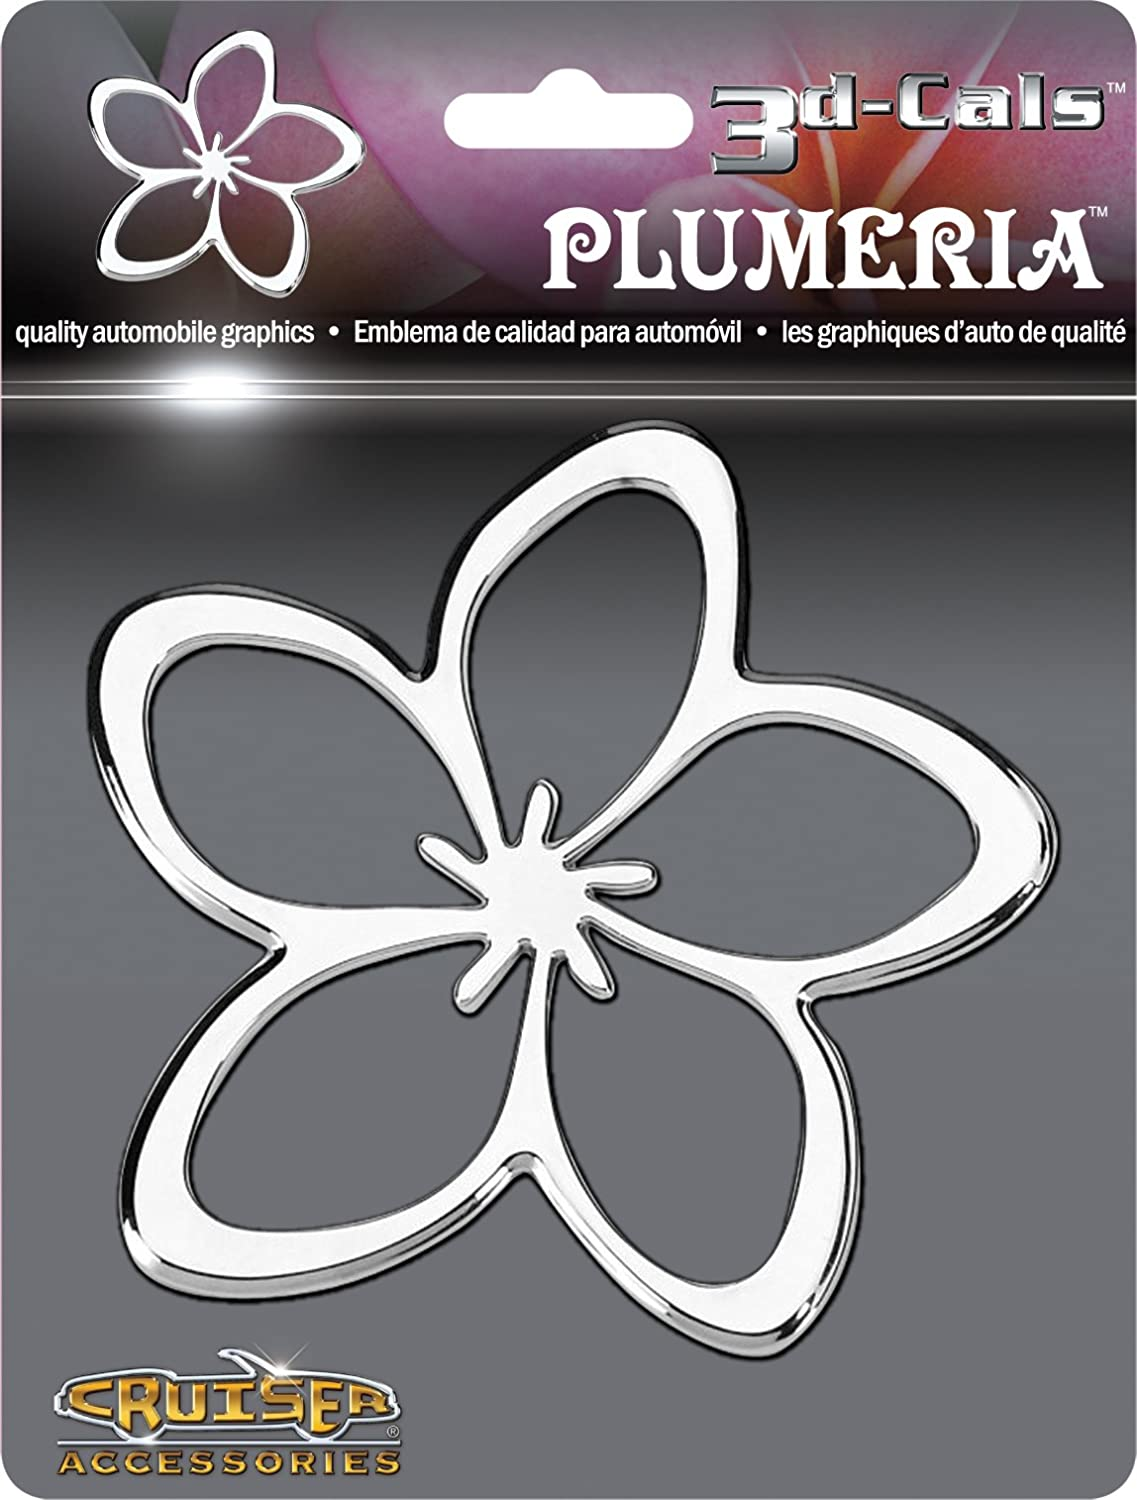 Cruiser Accessories 83033 3d-Cals Plumeria Chrome